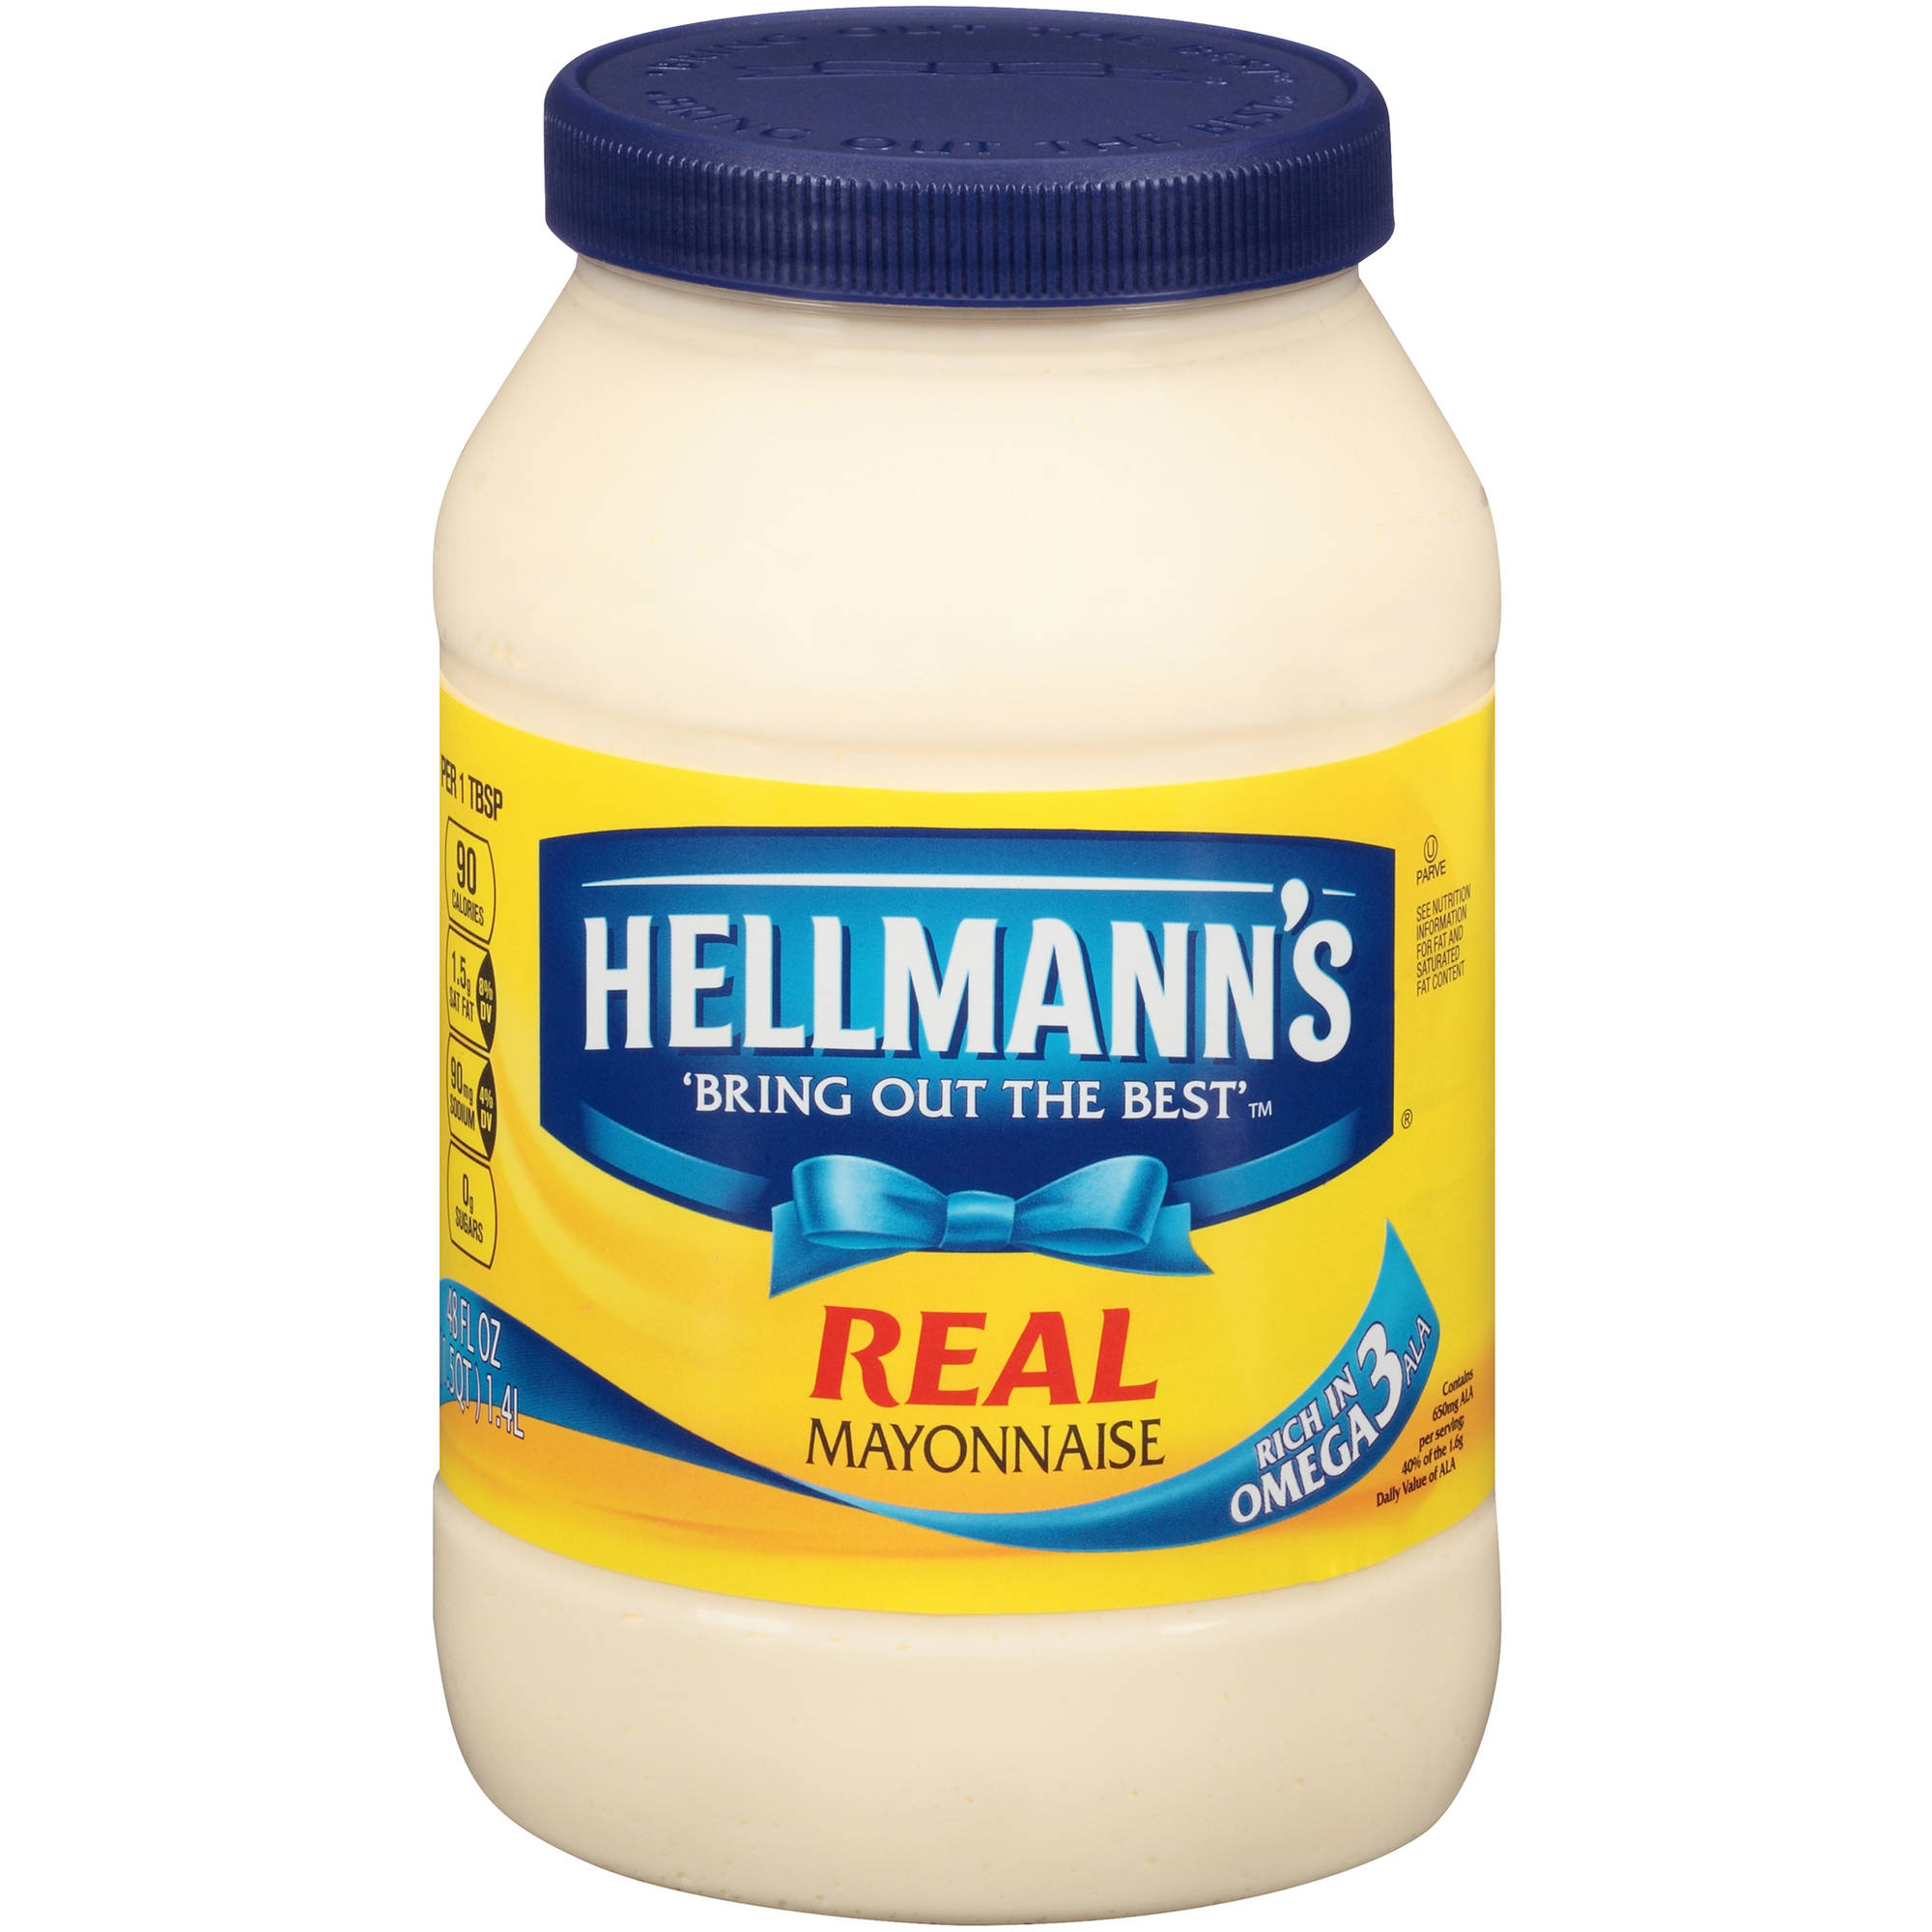 Mayonnaise for sale